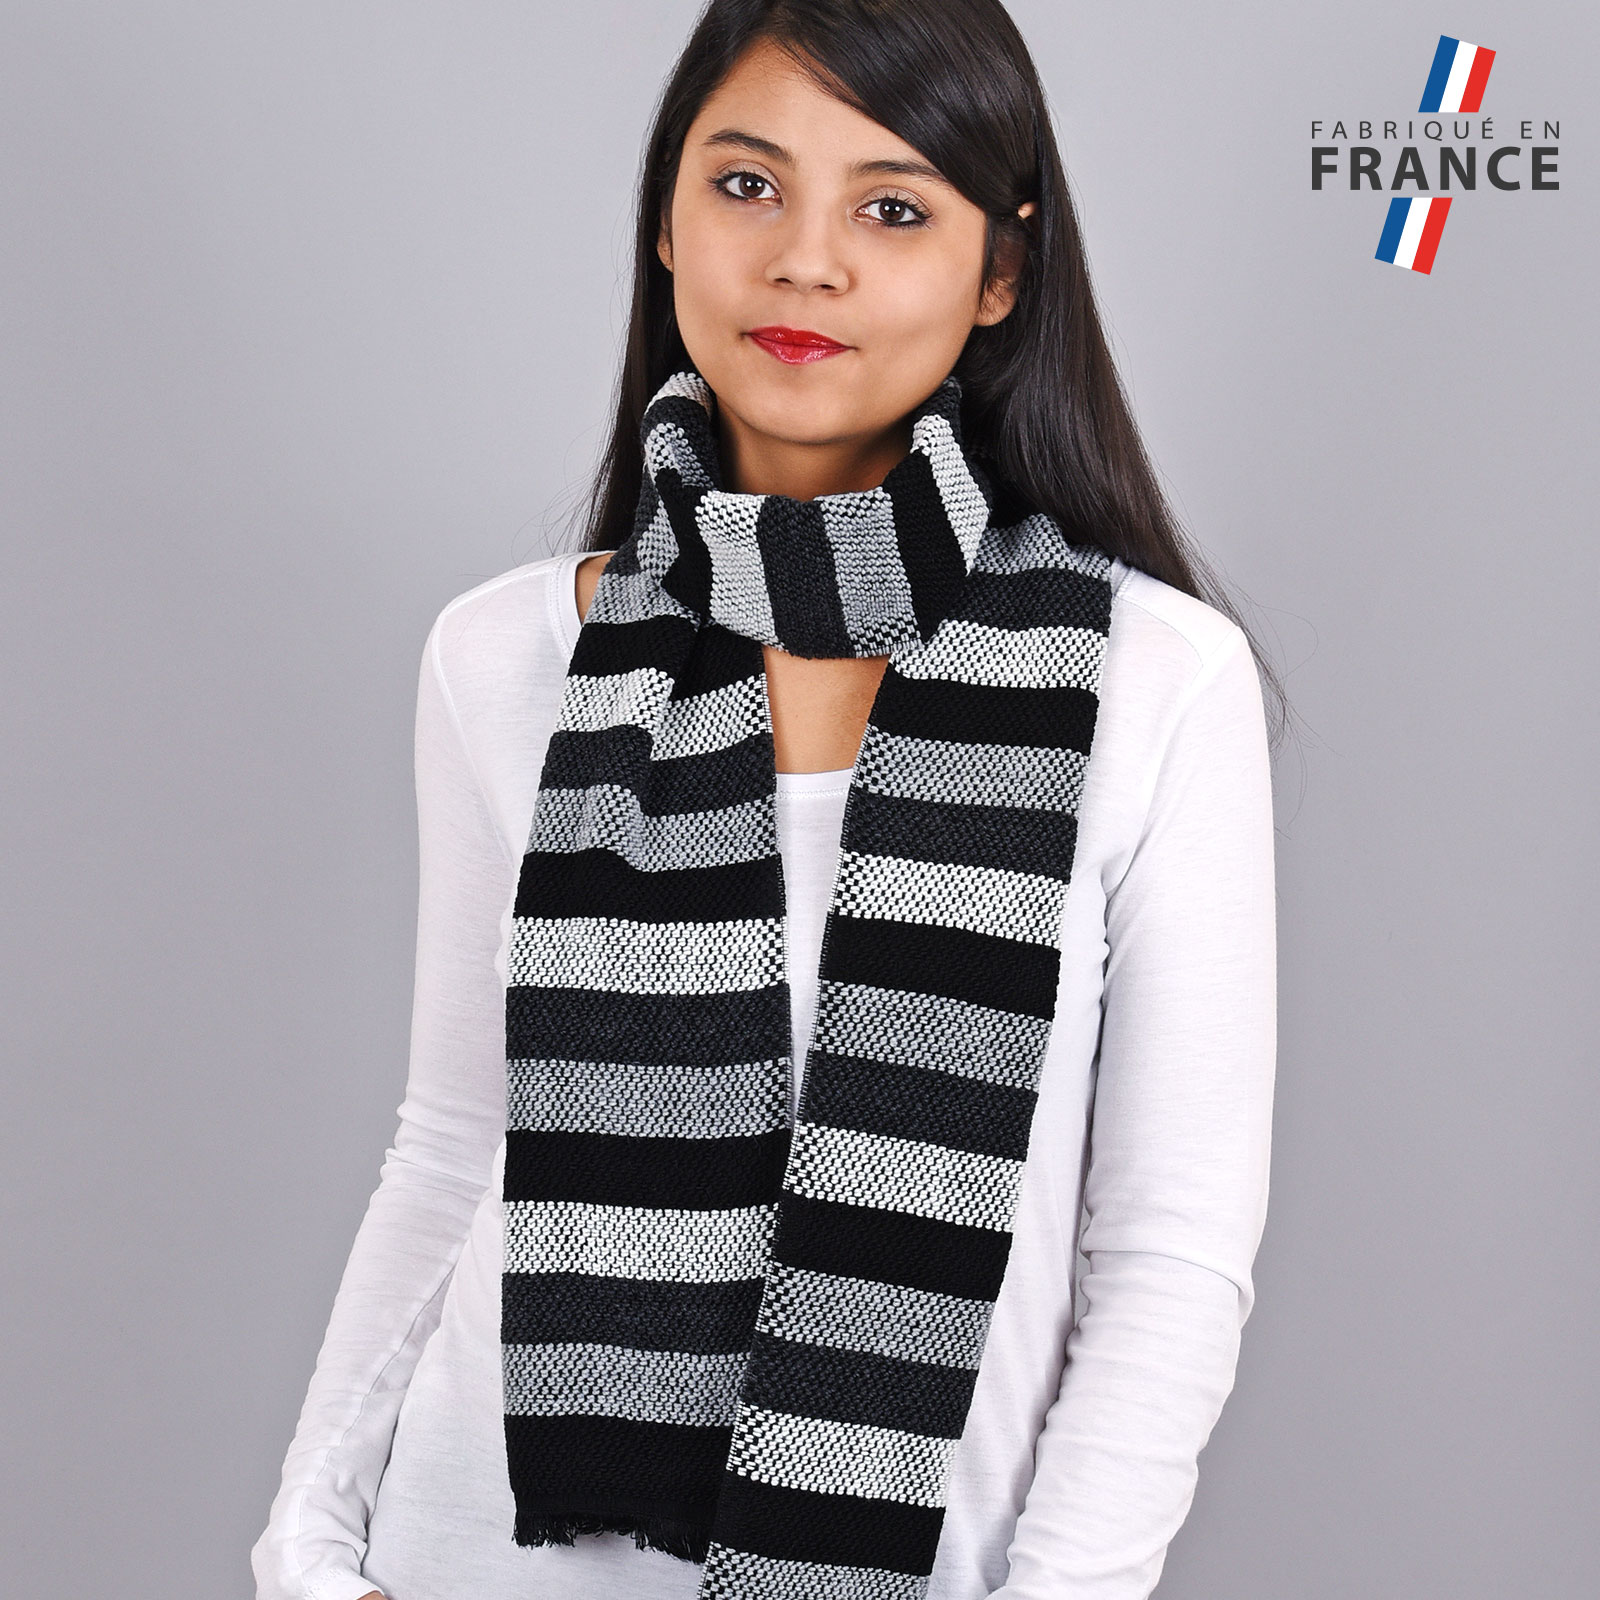 AT-03483-VF16-LB_FR-echarpe-rayures-gris-noir-fabrication-france